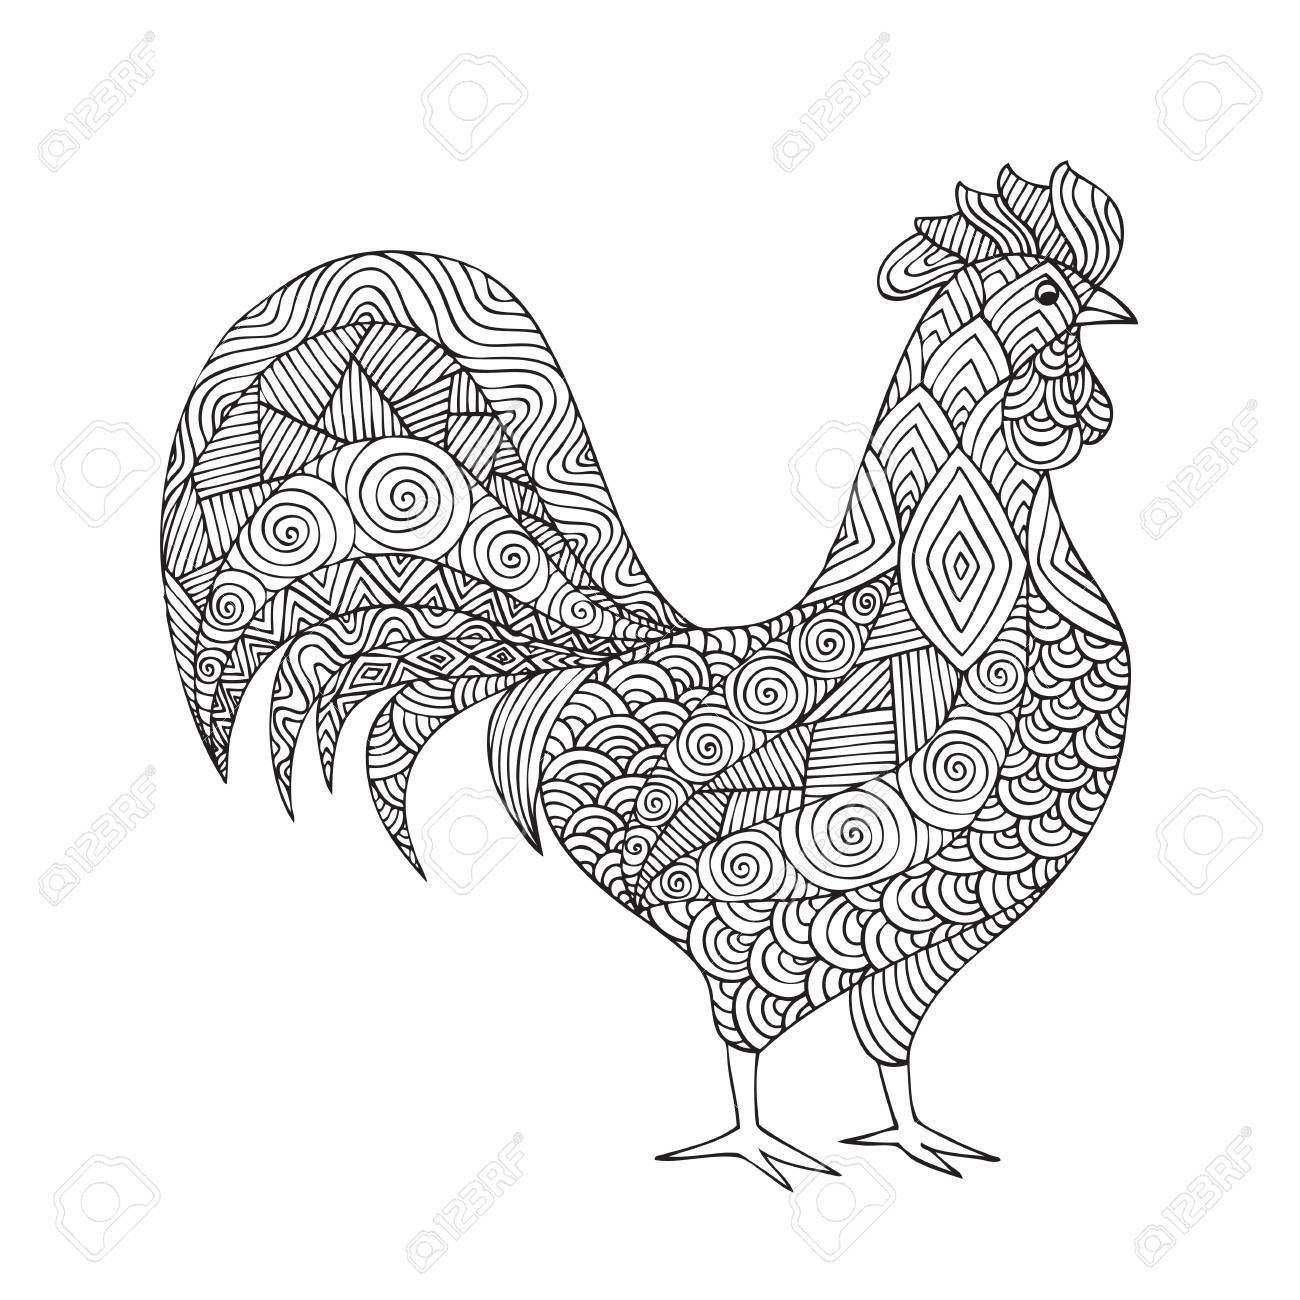 25 Brilliant Photo Of Rooster Coloring Page Albanysinsanity Com In 2020 Coloring Pages Chicken Coloring Pages Chicken Coloring